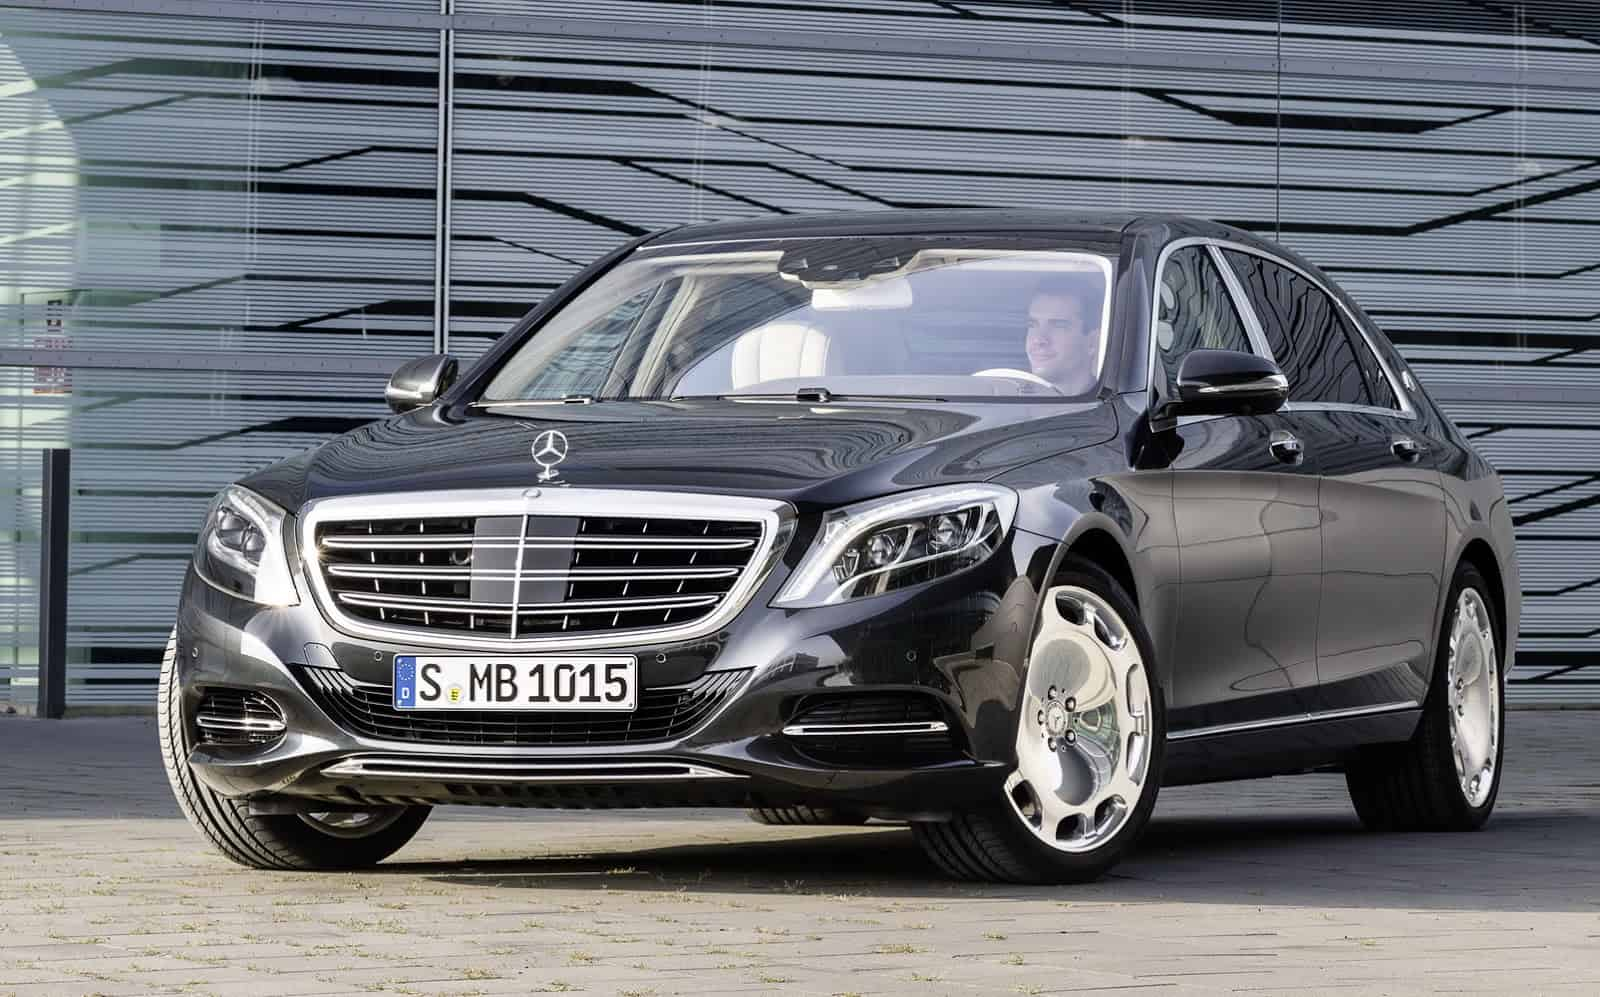 Mercedes Maybach S600 : le luxe ultime refait surface